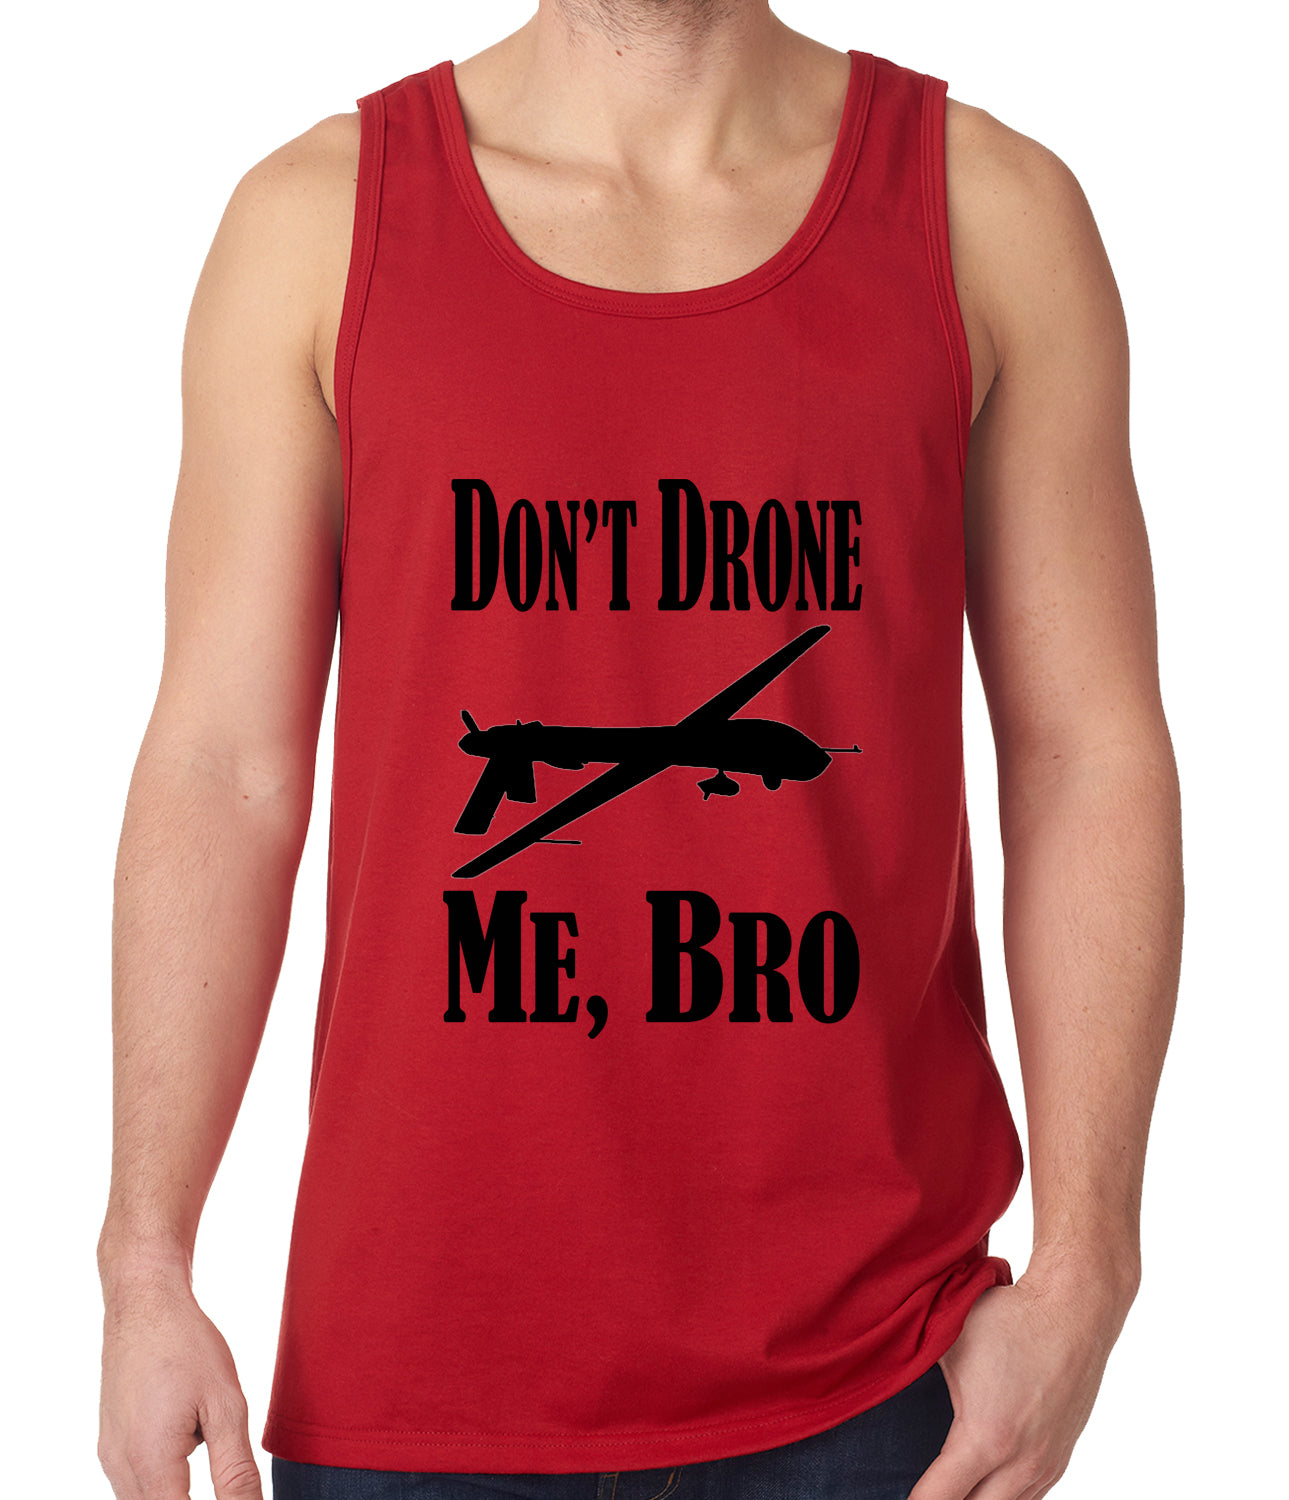 Don't Drone Me, Bro Tank Top